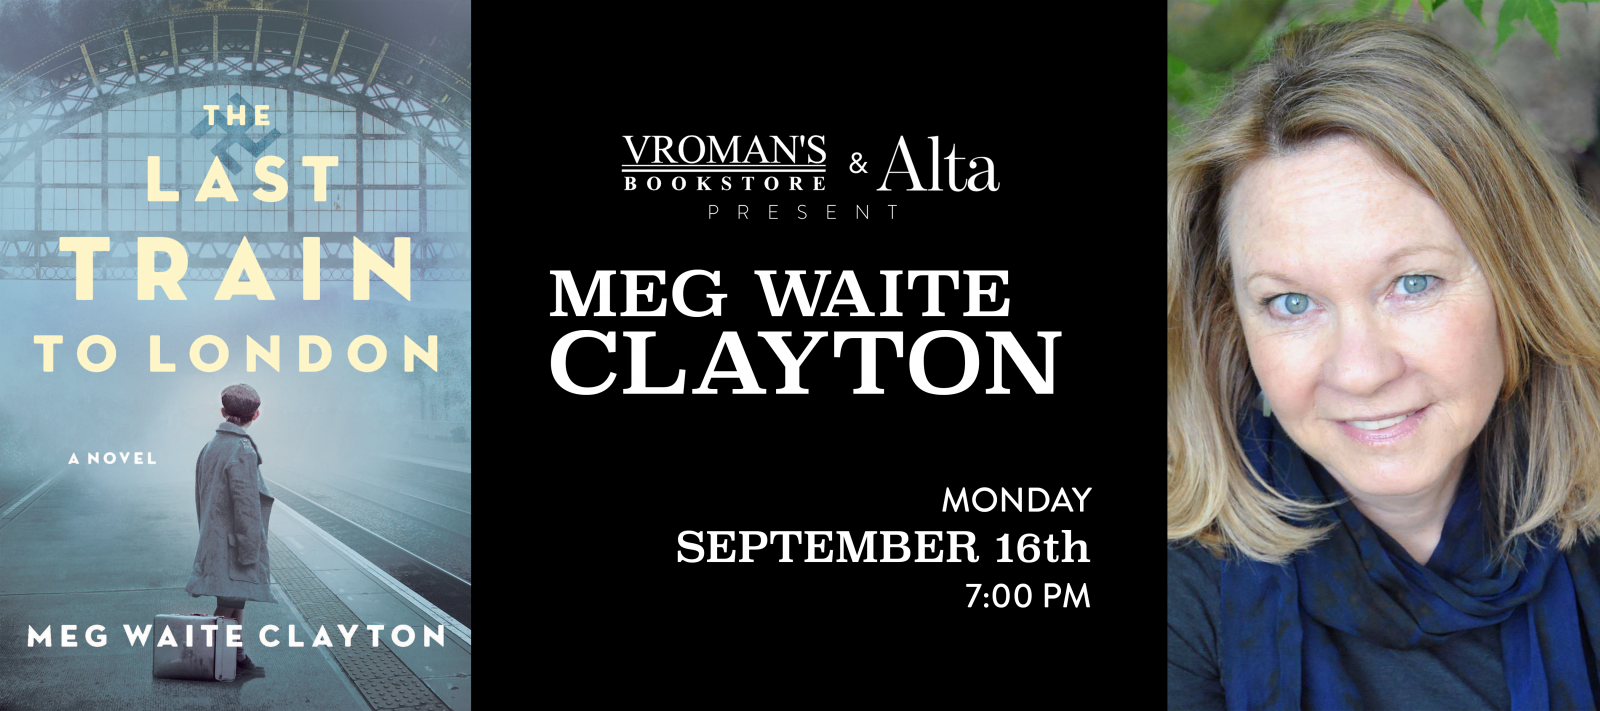 Meg Waite Clayton book signing Monday September 16 at 7pm